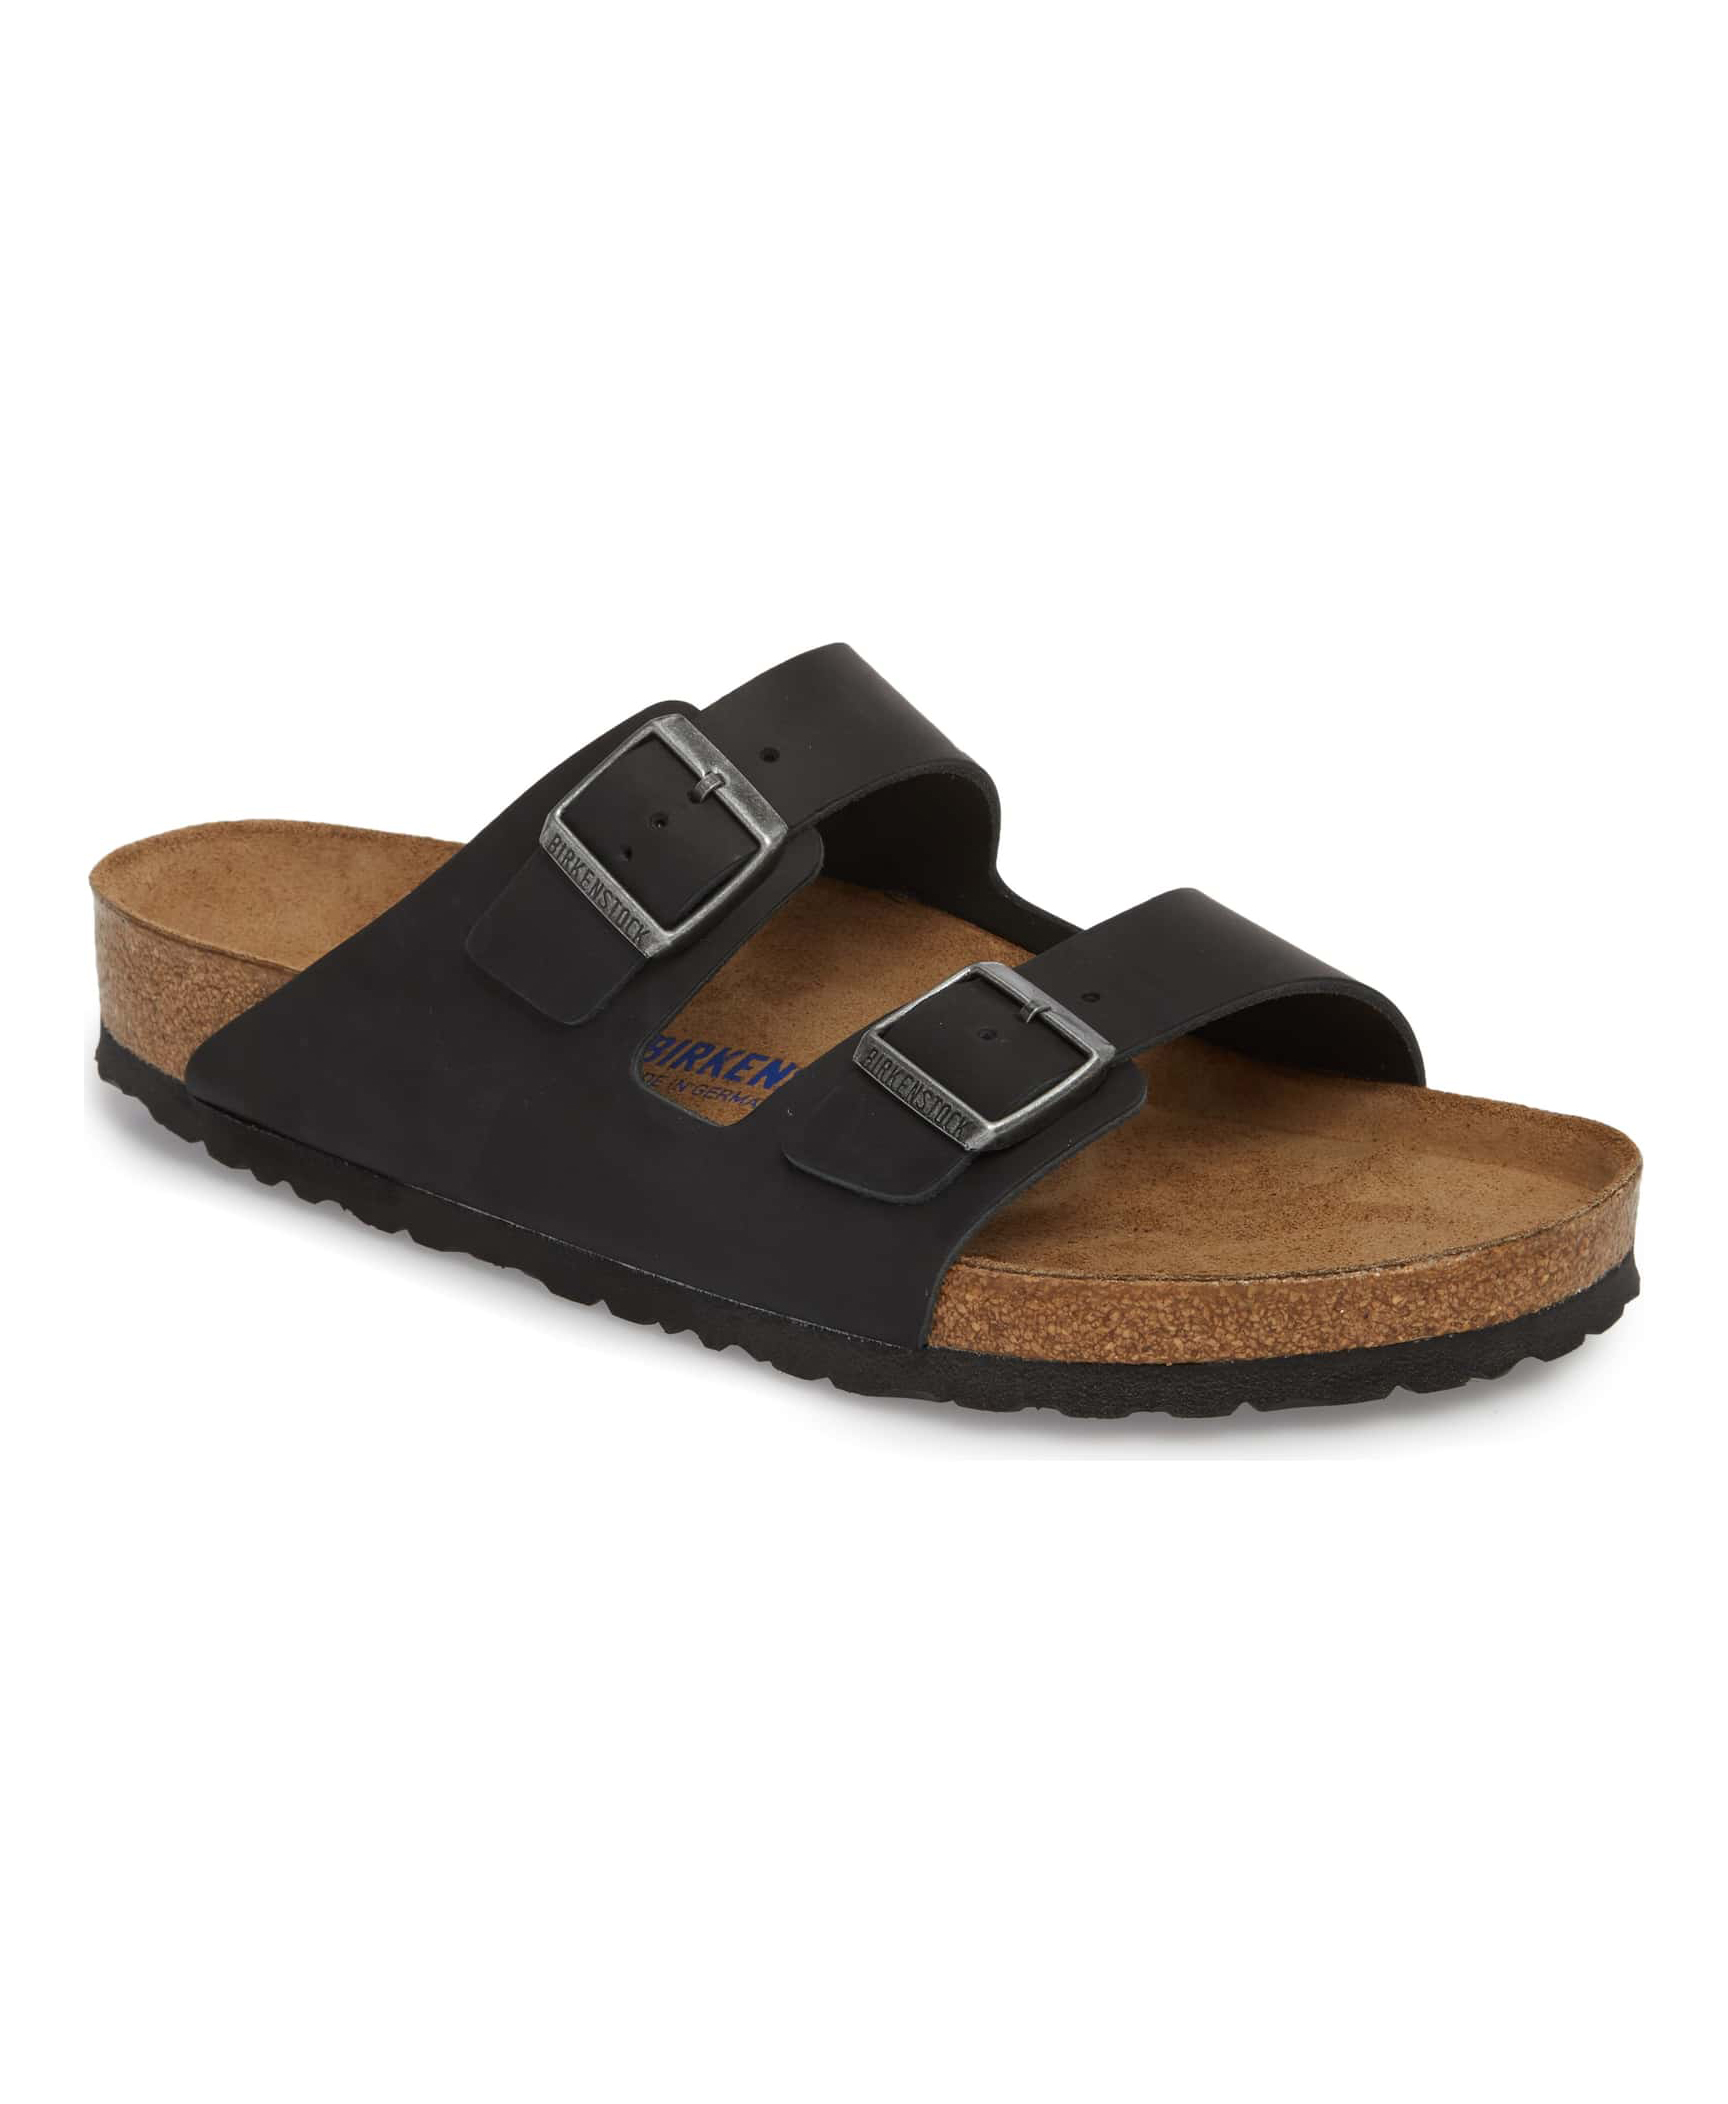 Arizona Soft Slide Sandal